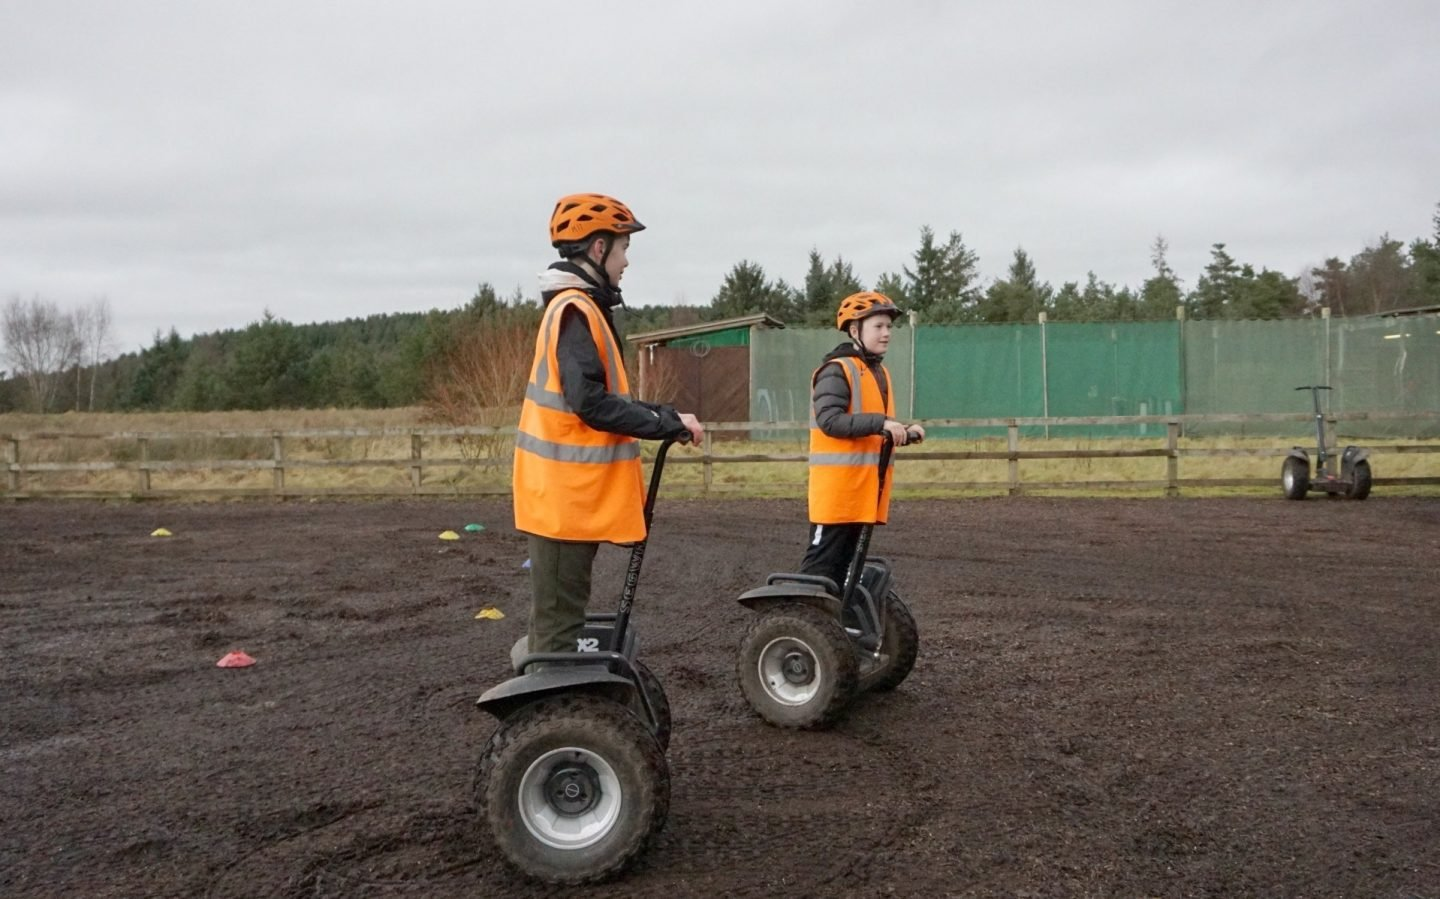 Teenagers and Segway at Centerparcs Whinfell Forrest ww.extraordinarychaos.com